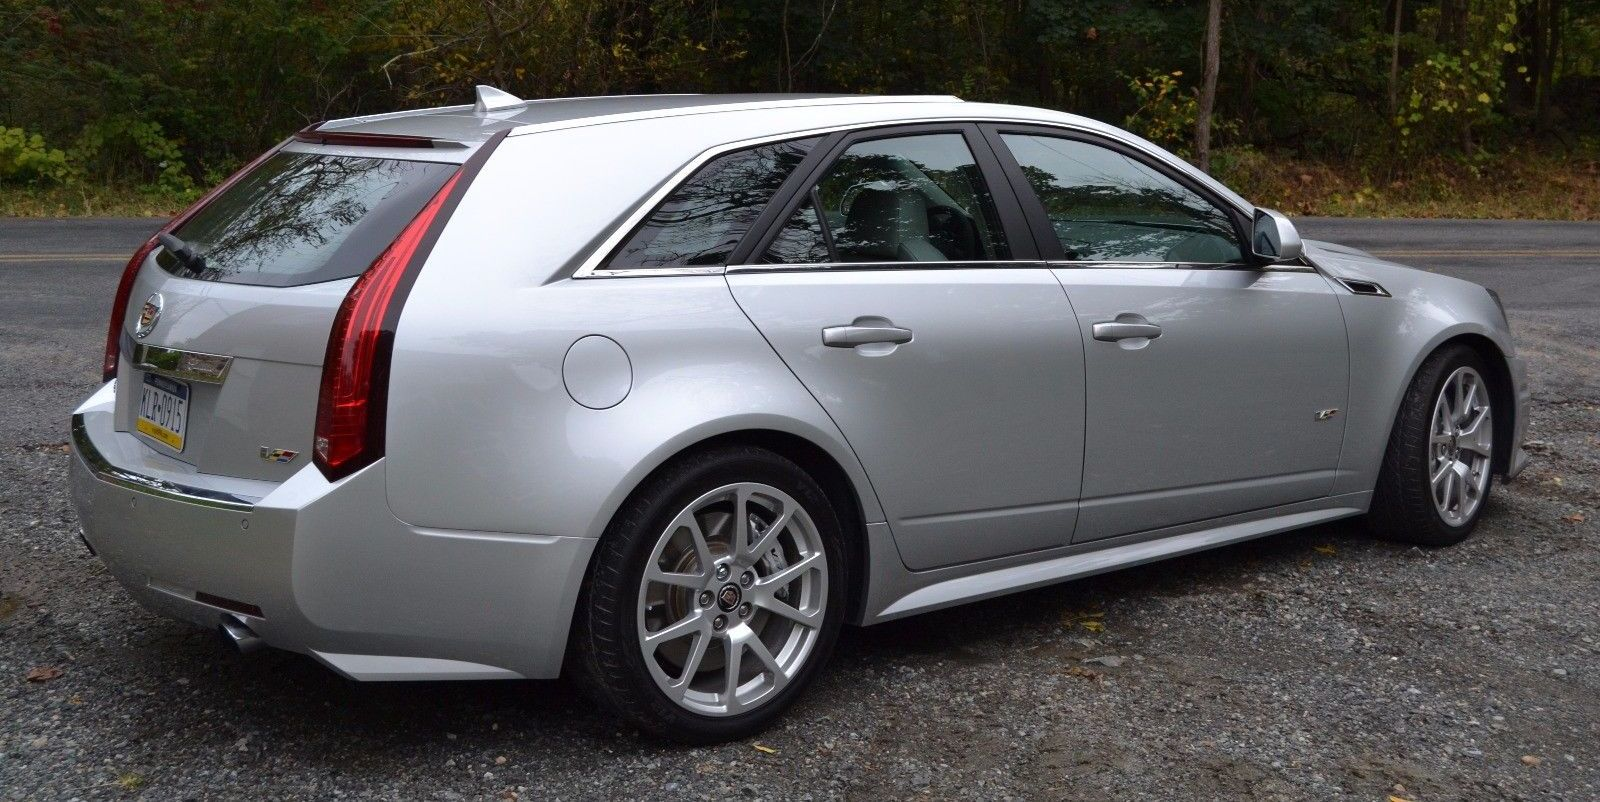 Cadillac Cts-V Wagon For Sale >> You Must Buy This Manual Cadillac Cts V Wagon